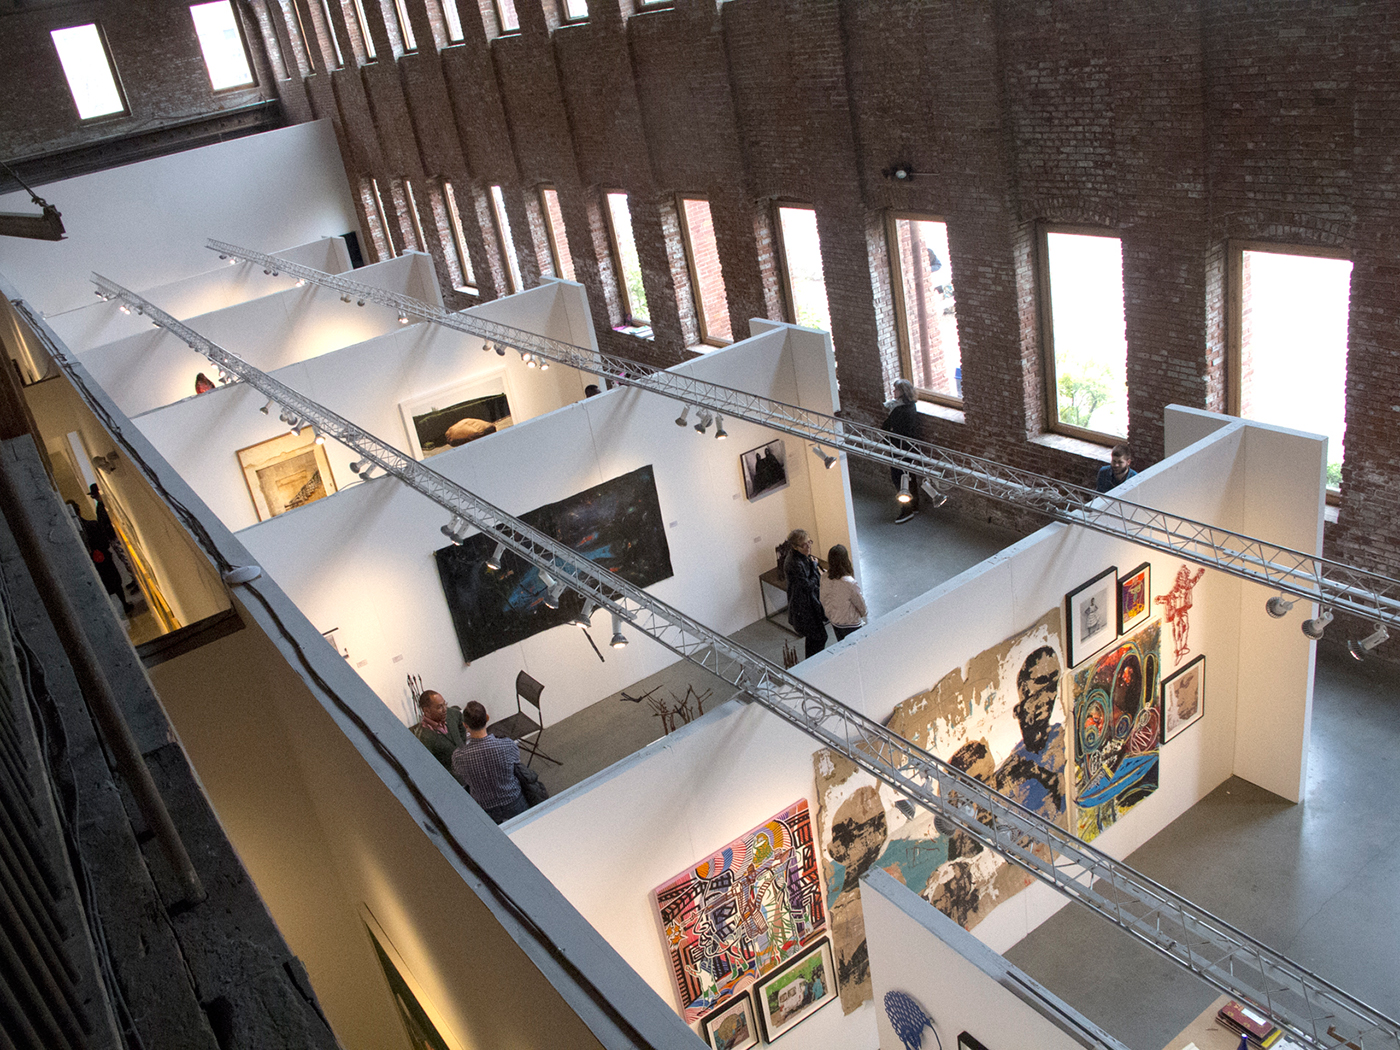 The 2016 edition of 1:54 Contemporary African Art Fair at Pioneer Works (photo by the author for Hyperallergic)